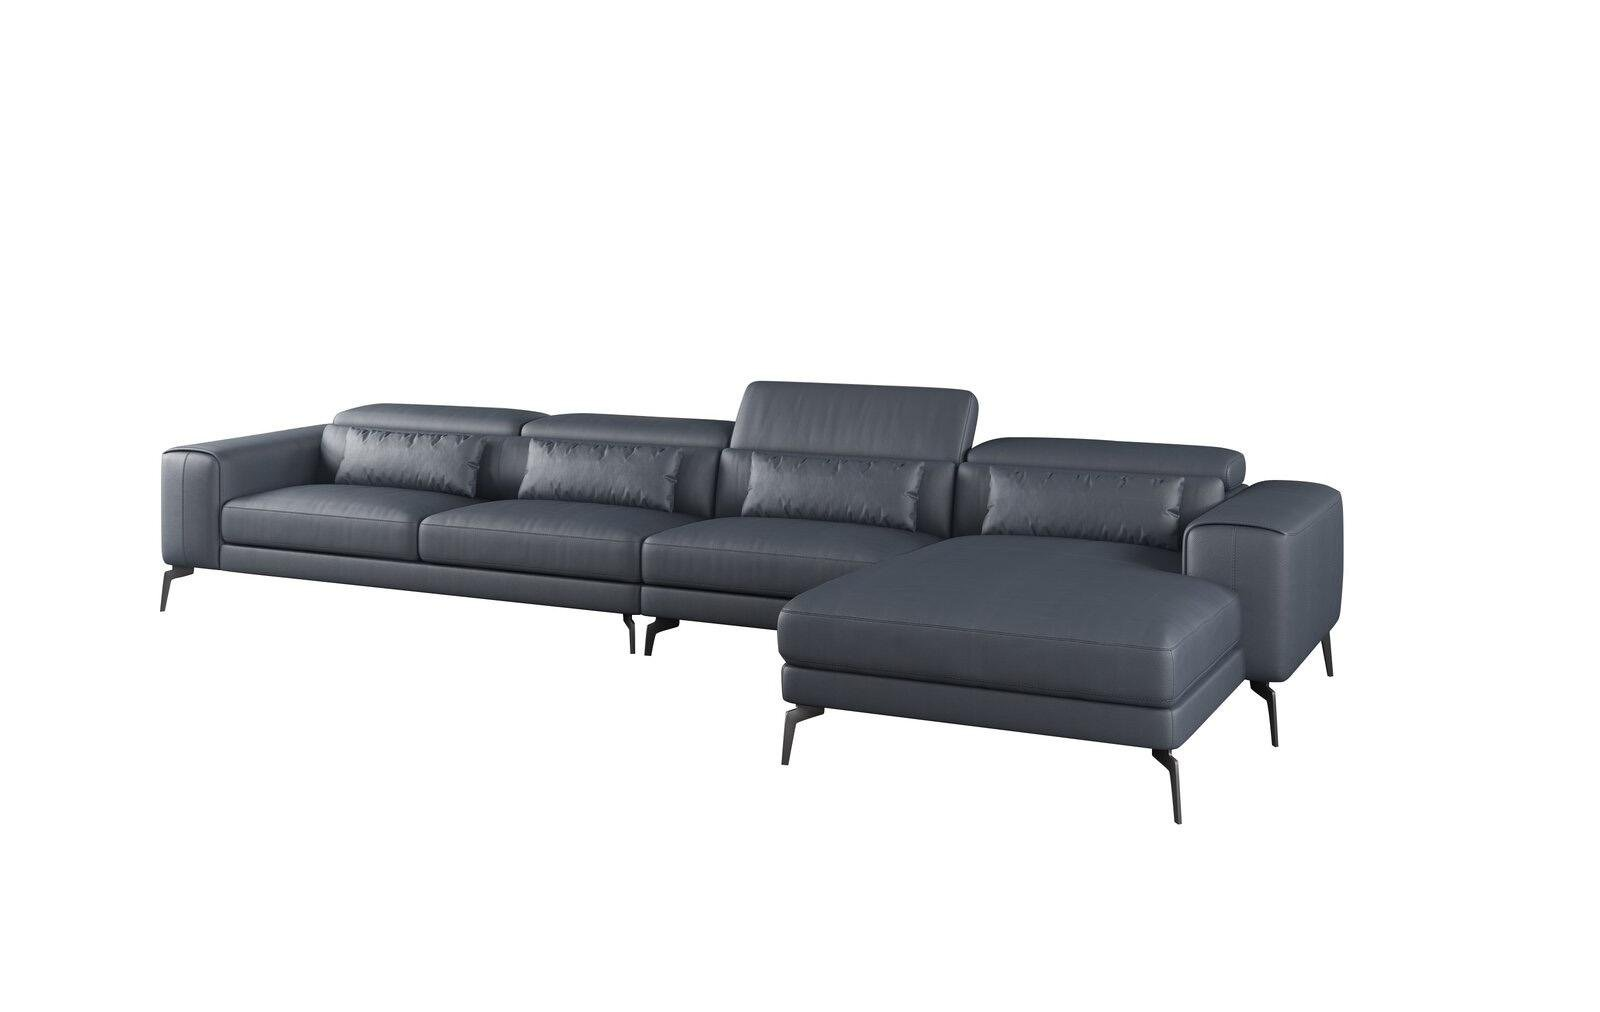 Contemporary, Modern Gray, Smoke Leather and Wood, Solid Hardwood 4-seat Sectional Sofa RHC CAVOUR by European Furniture